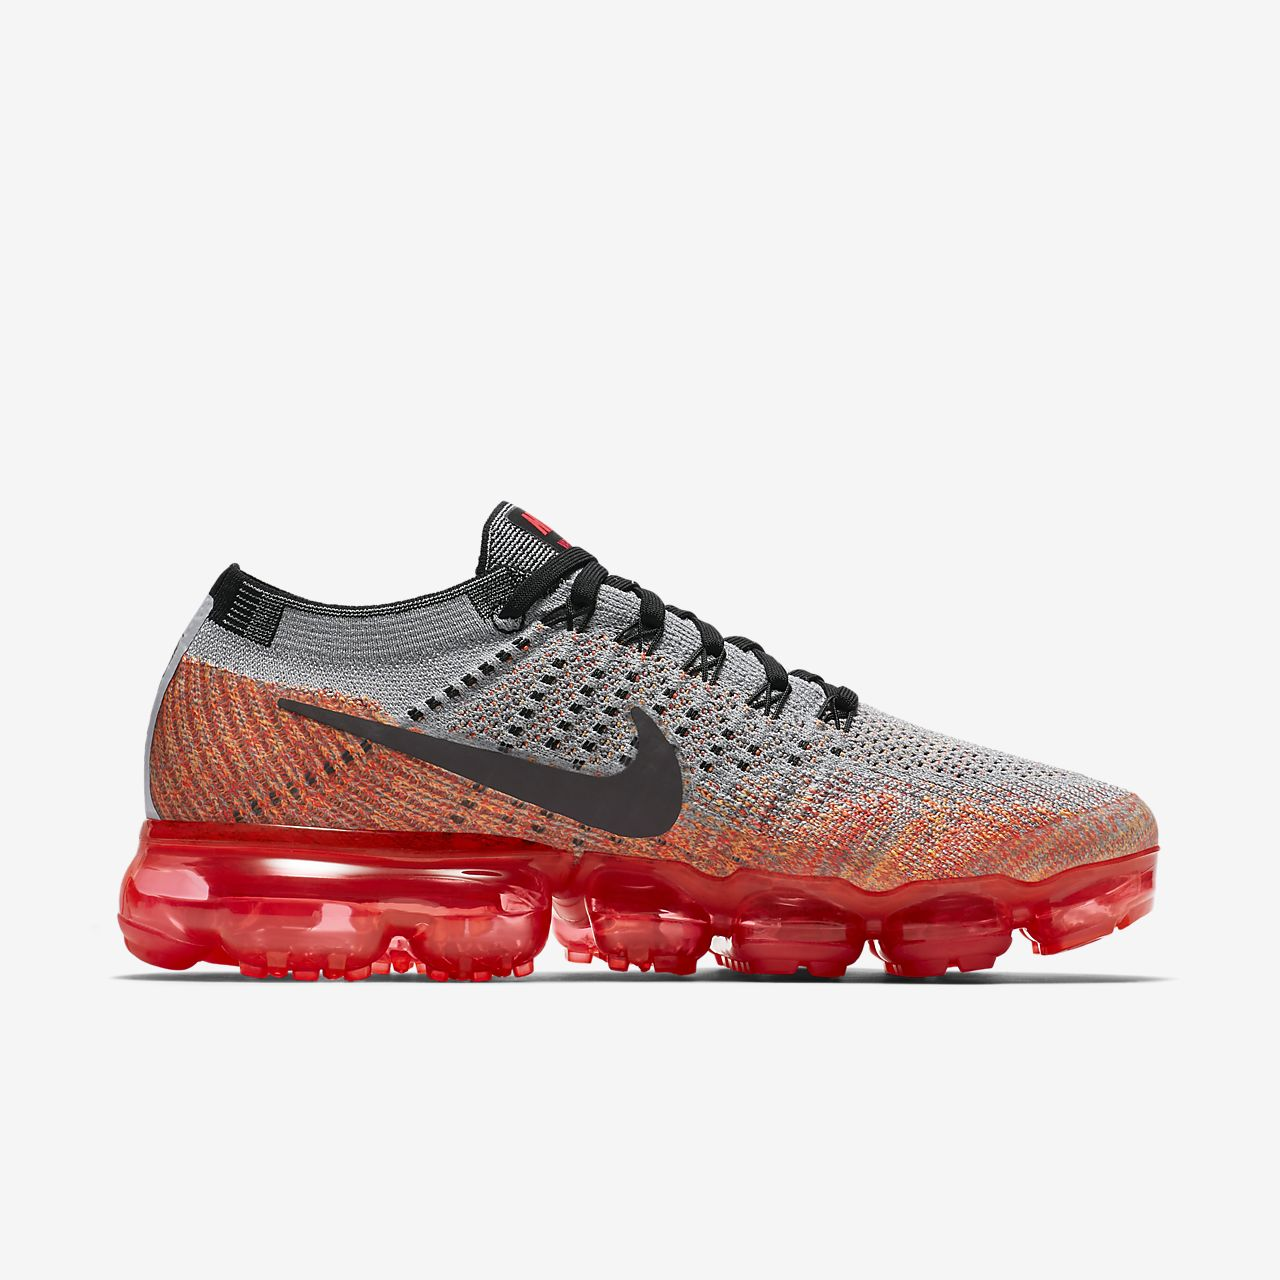 NikeLab Air VaporMax 'Oreo' Nike 899473 002 pale grey/sail